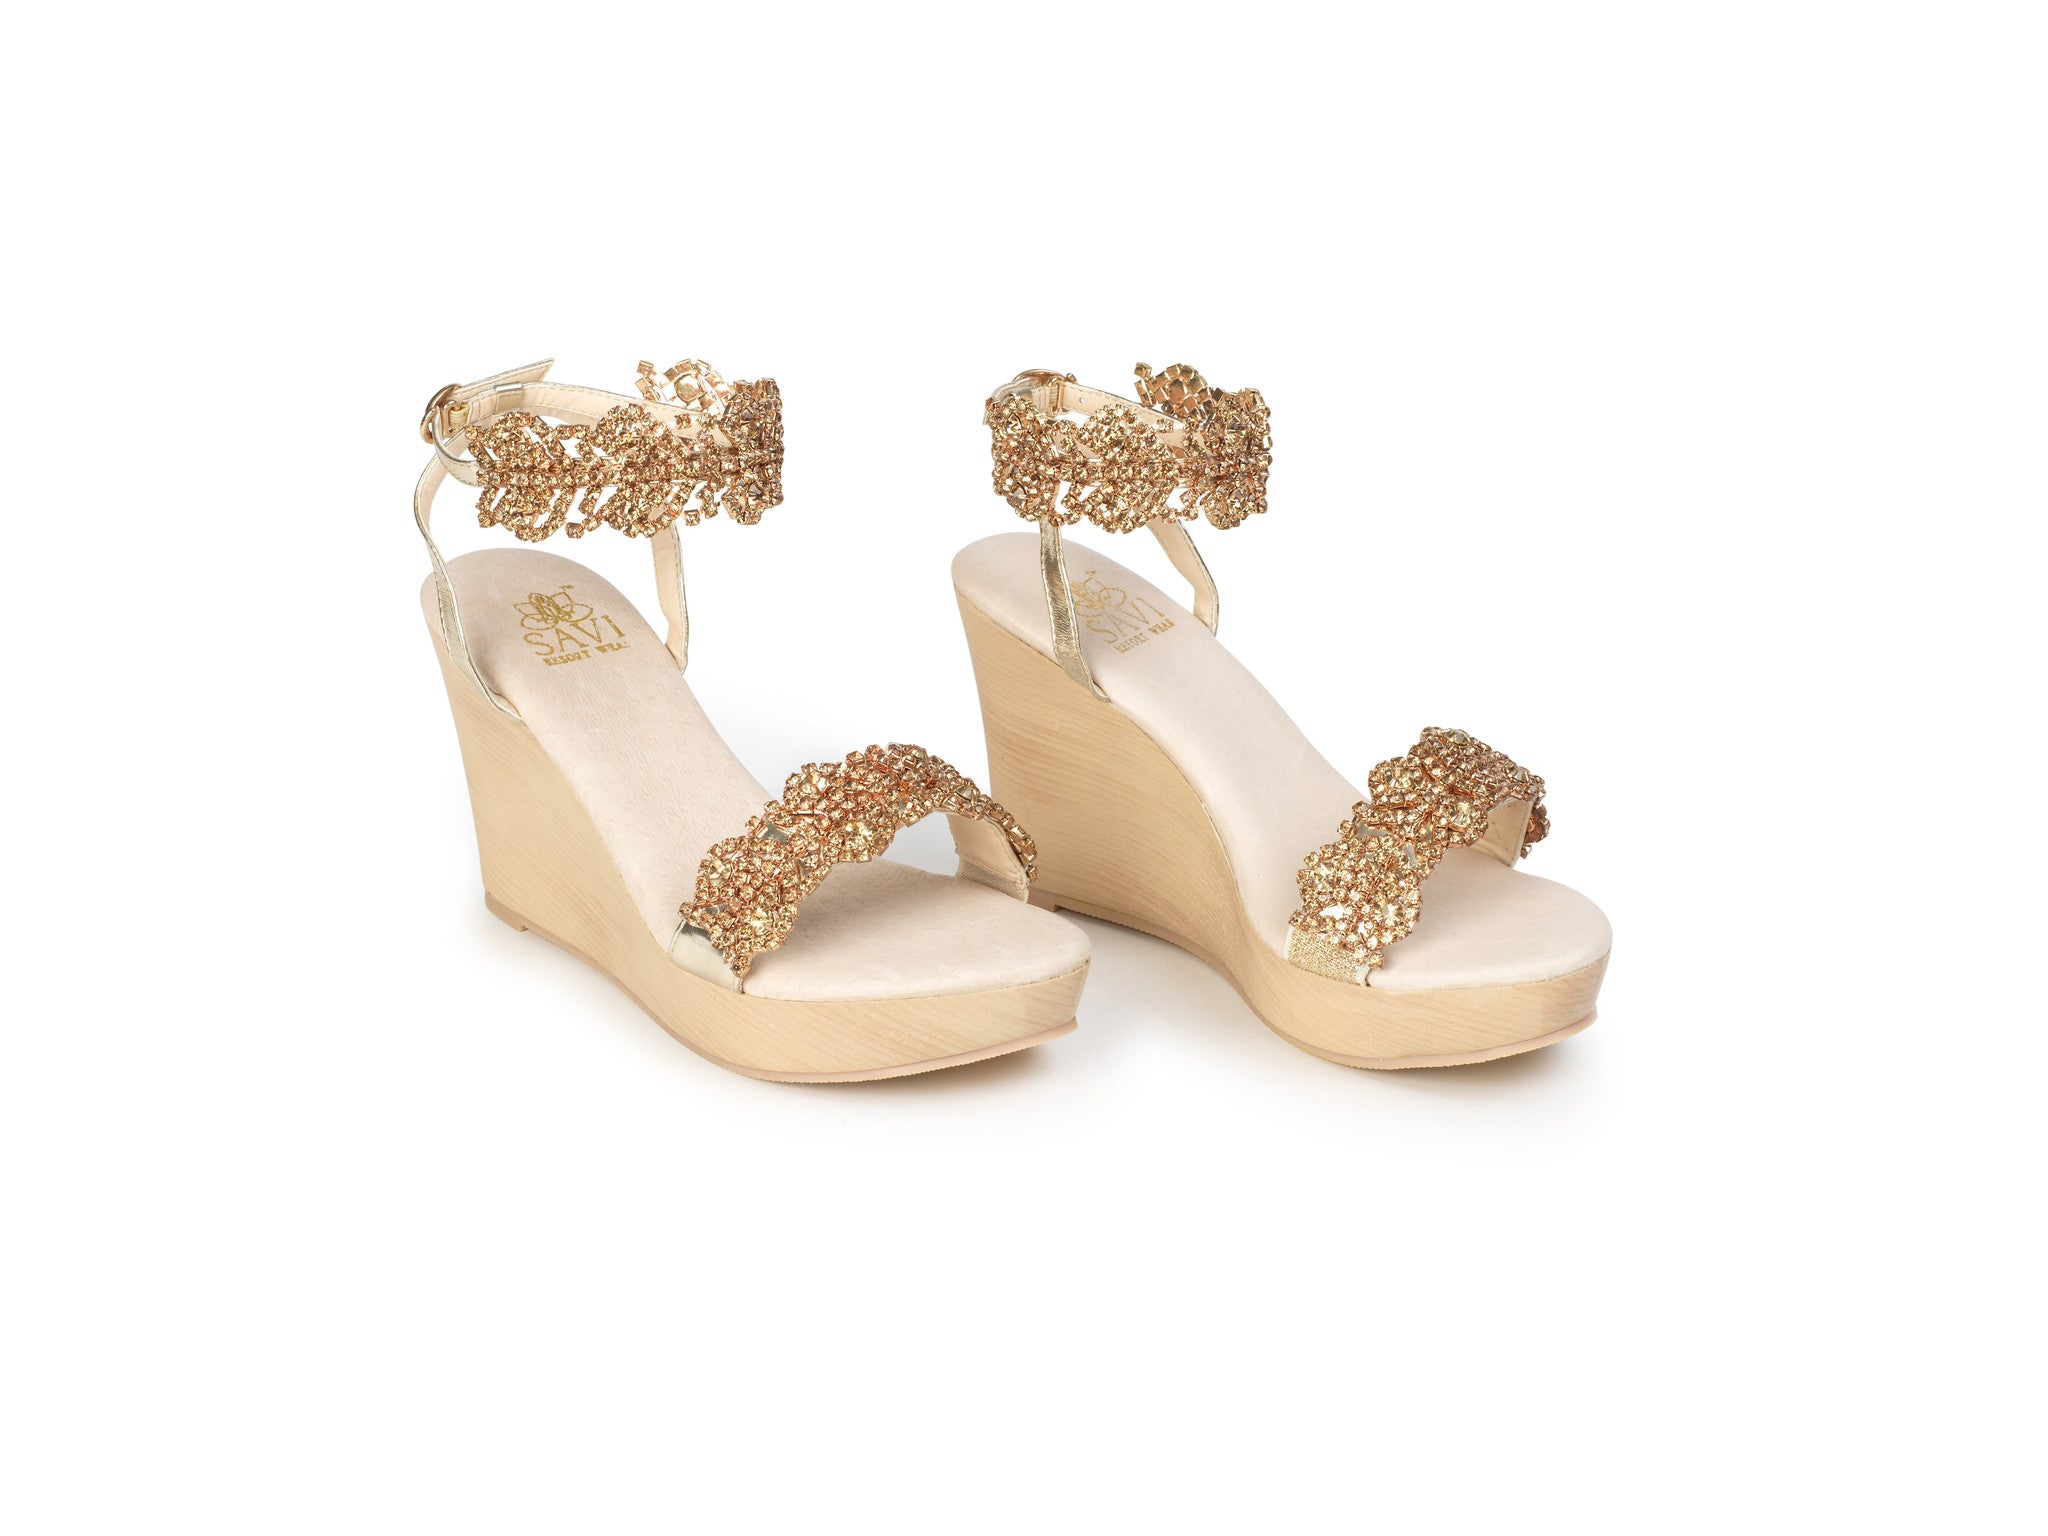 Candace Gold Wedge - Sandals  Wedges  Espadrilles